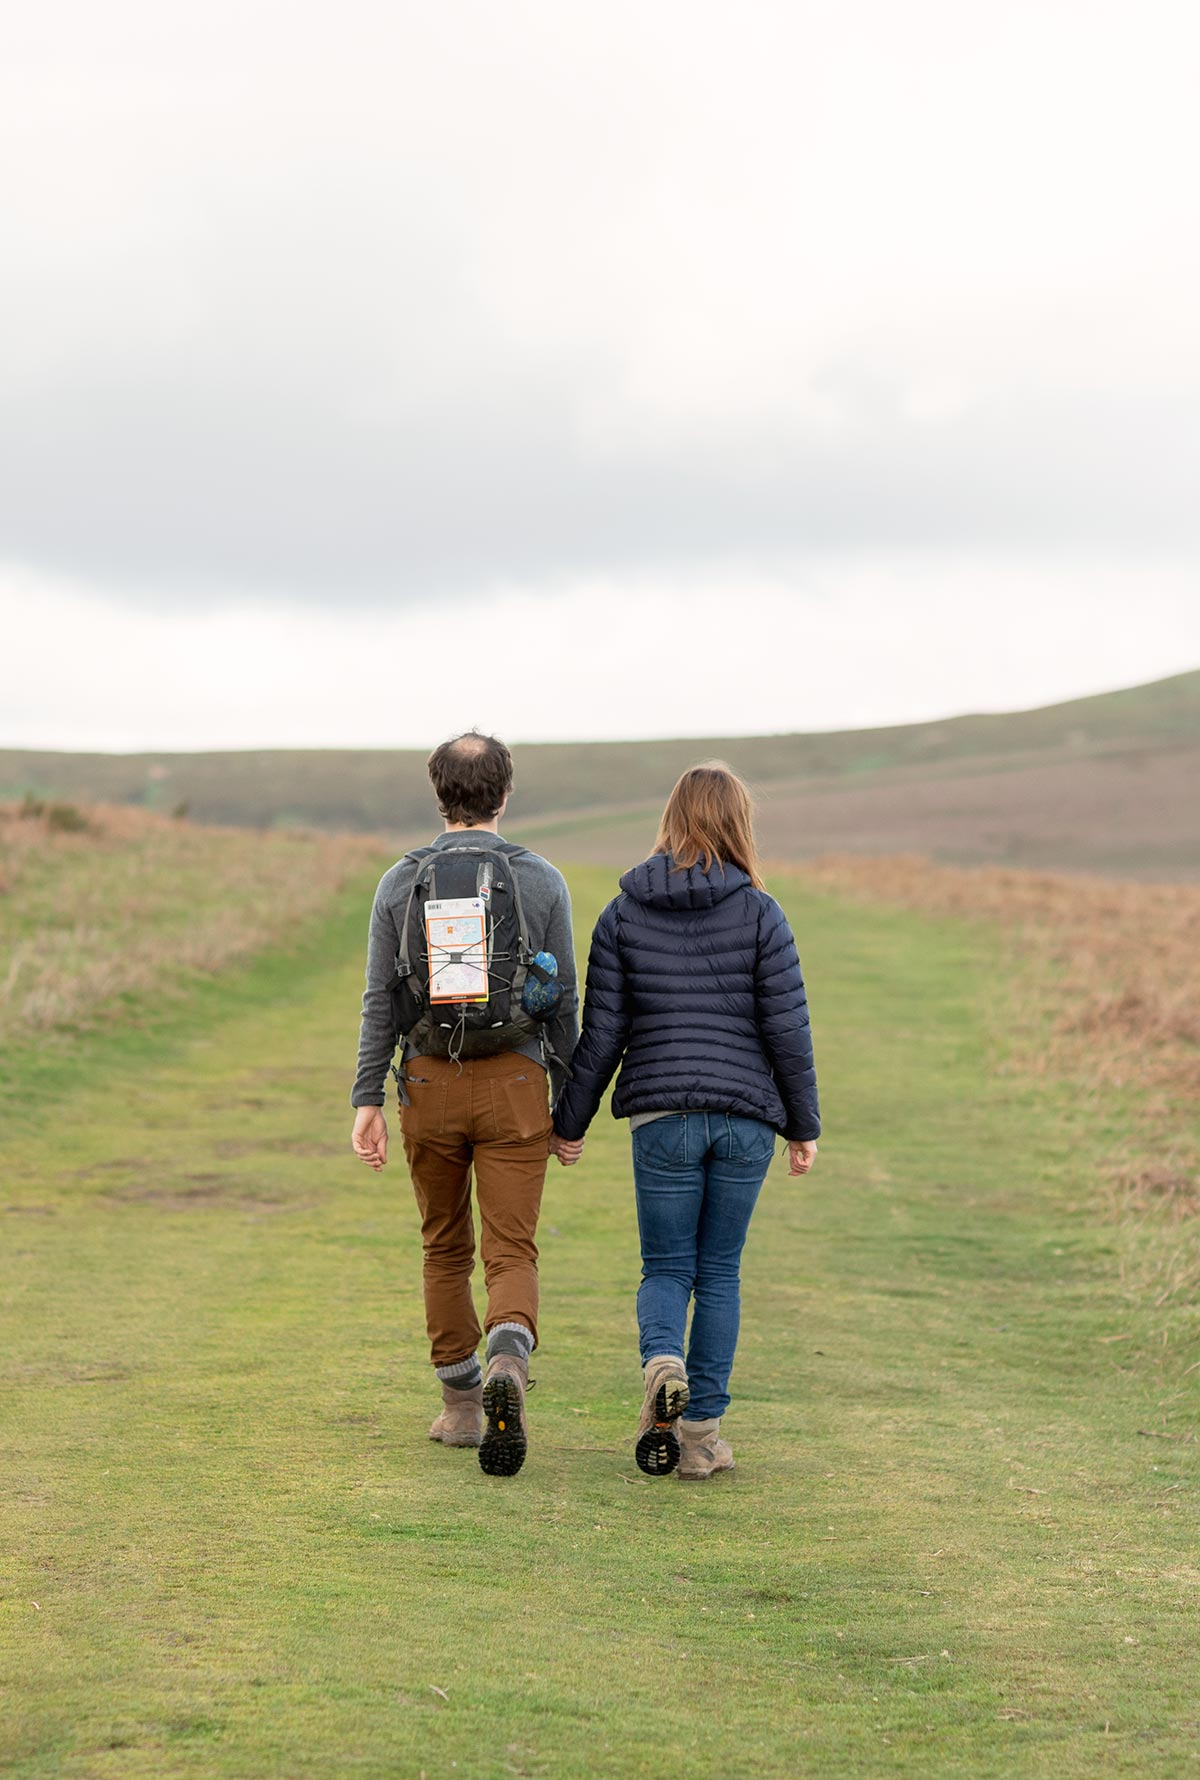 Engaged couple on hiking trip in Wales UK